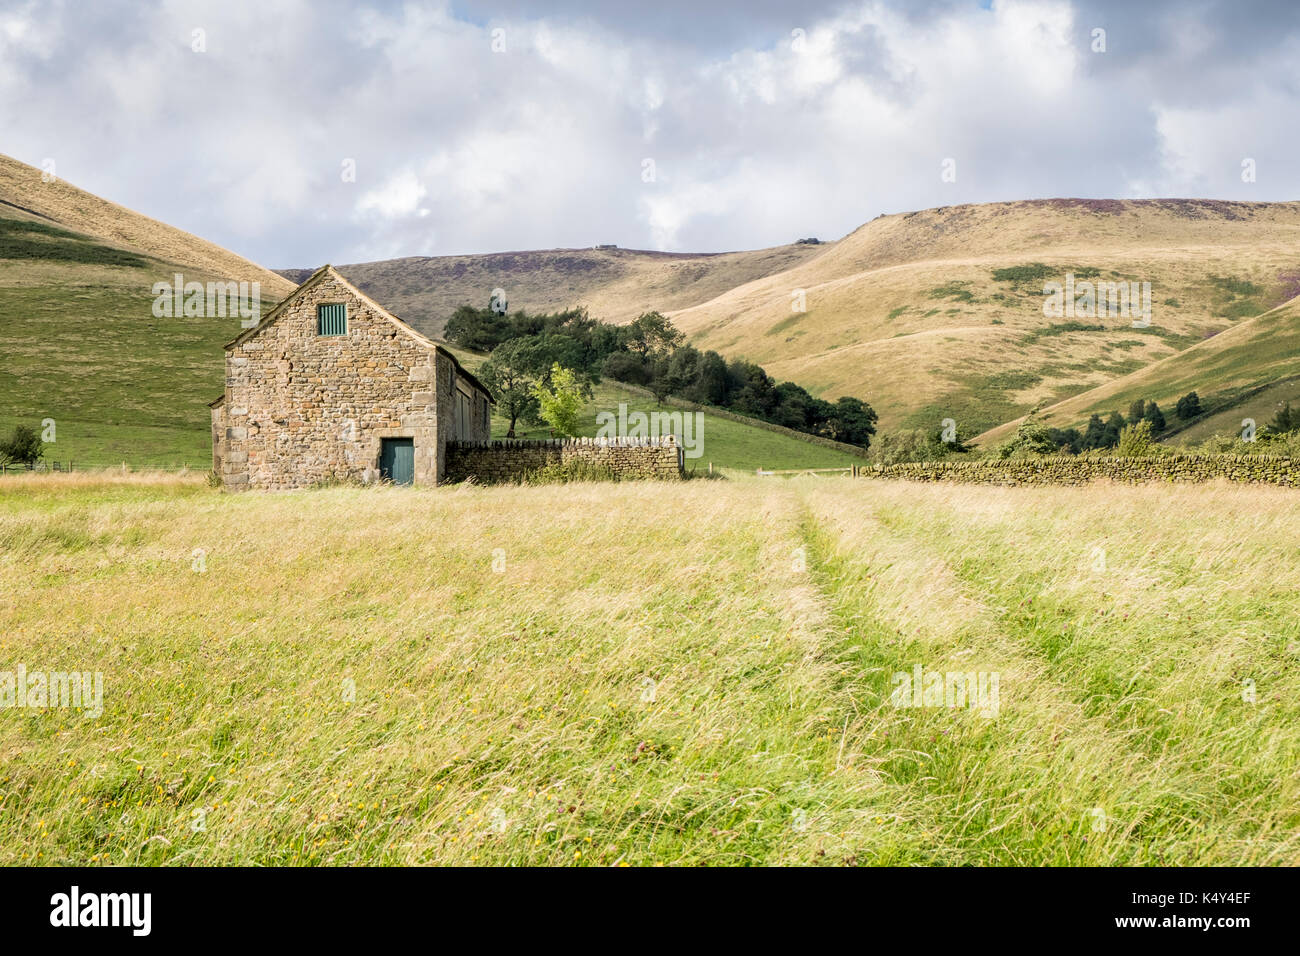 Derbyshire landscapes: Old stone barn at the foot of Crowden Clough, near Upper Booth, Vale of Edale, Derbyshire, Peak District, England, UK - Stock Image